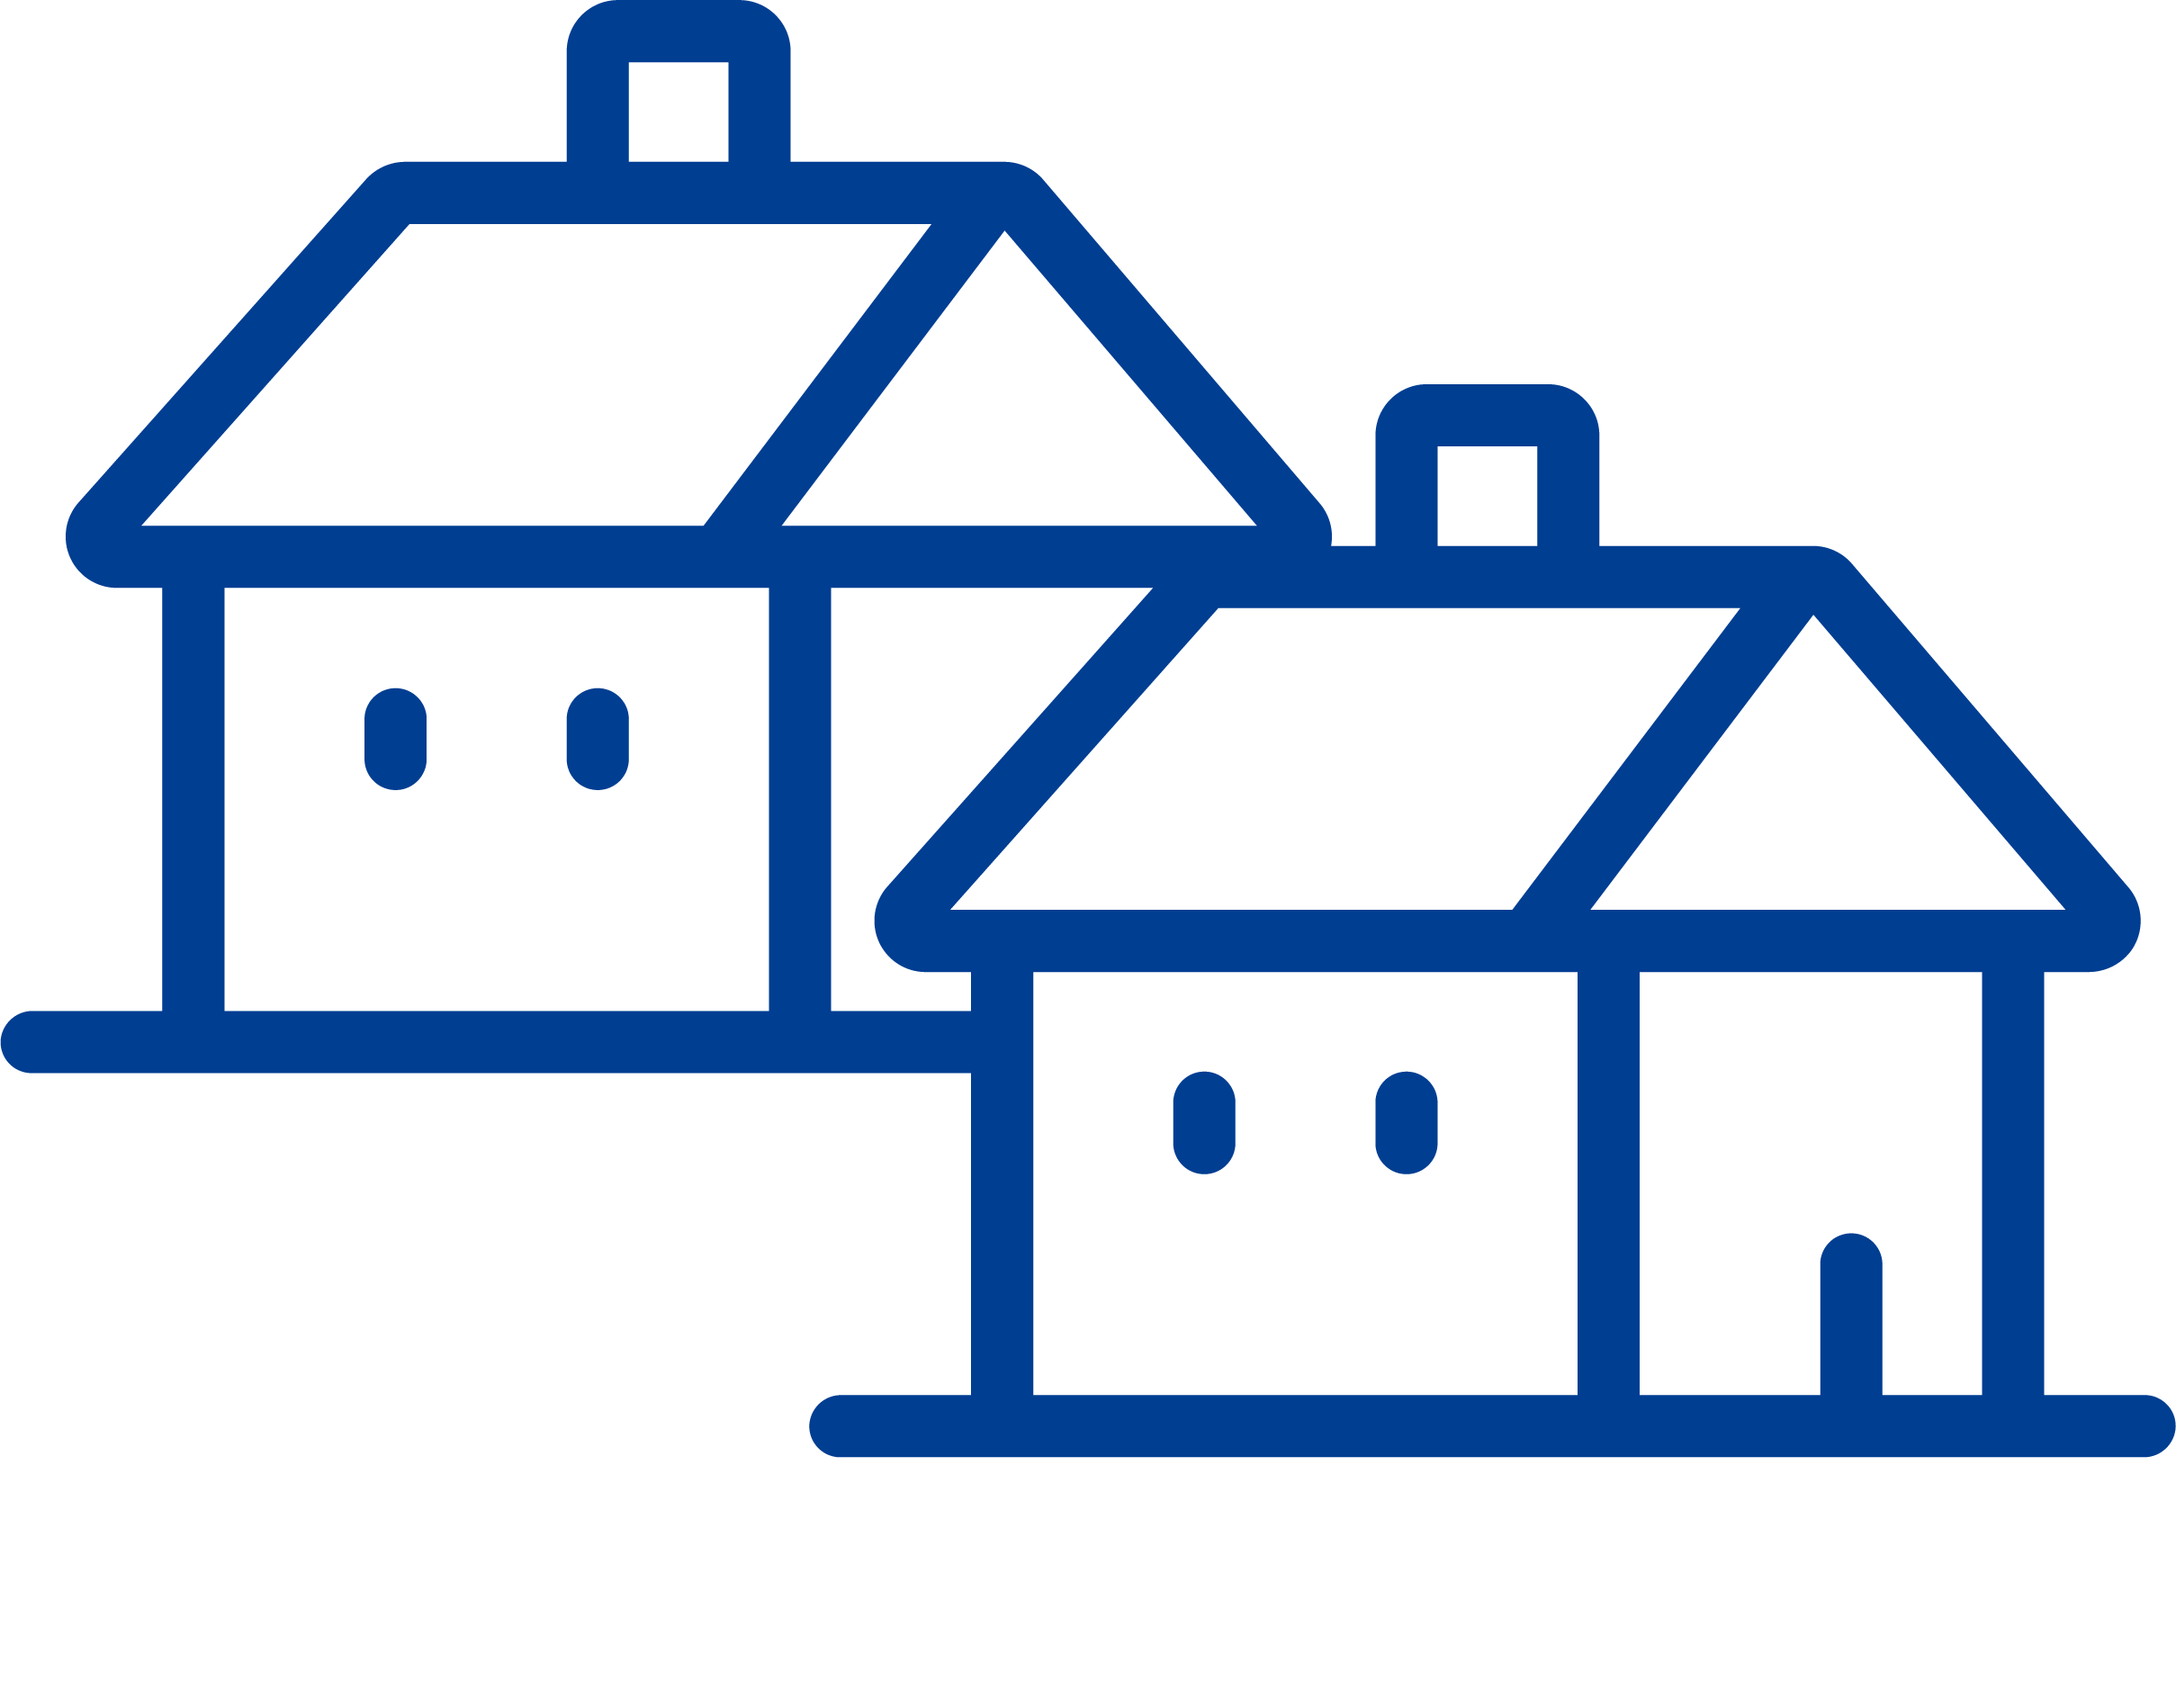 A blue icon of a house with a front door, a simple window, and a chimney